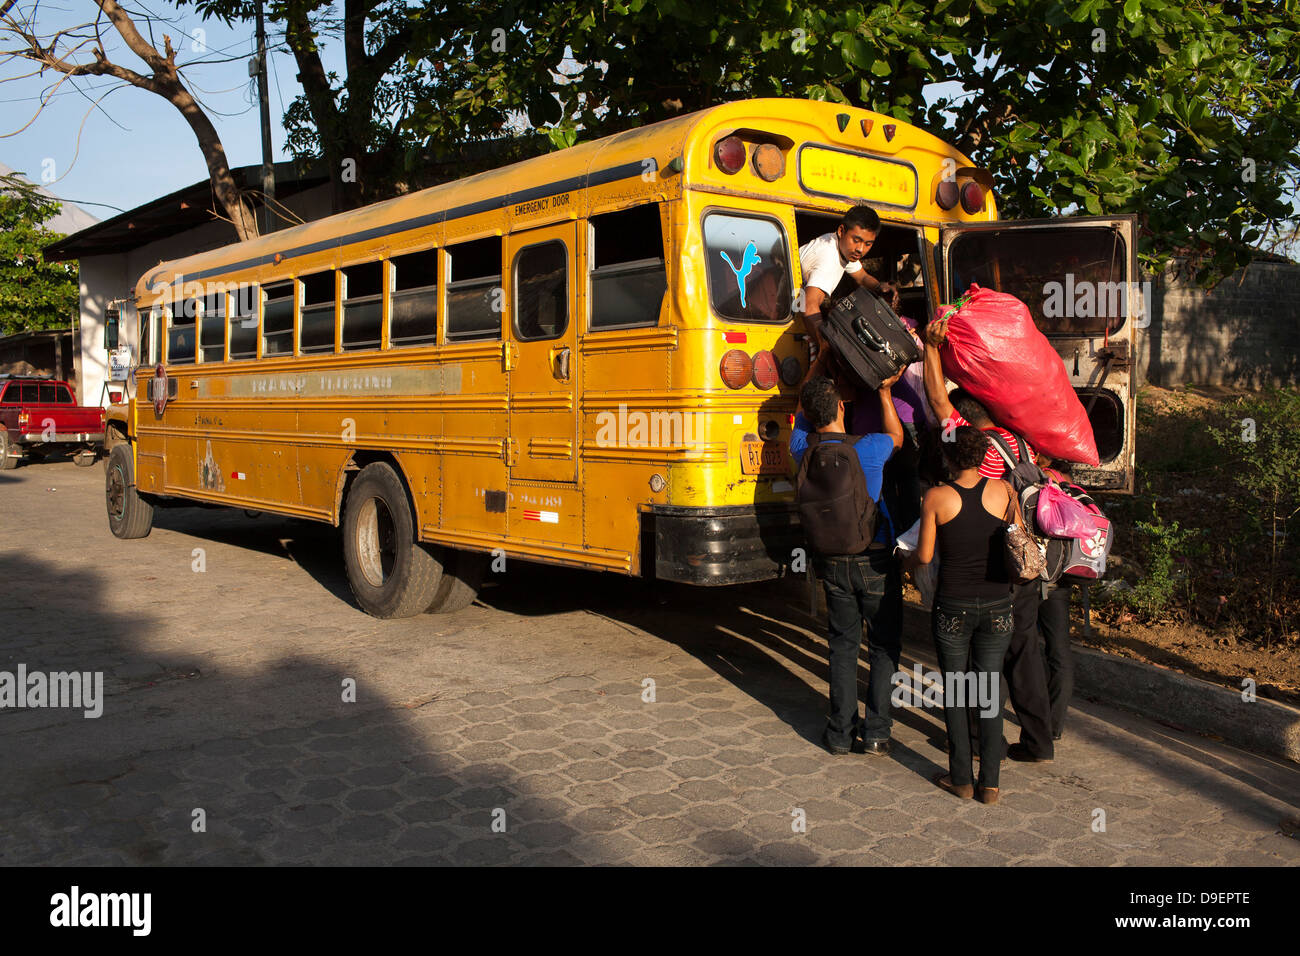 Nicaraguans load bags and luggage into the bus in Moyogalpa on Ometepe in the middle of Lake Nicaragua Stock Photo